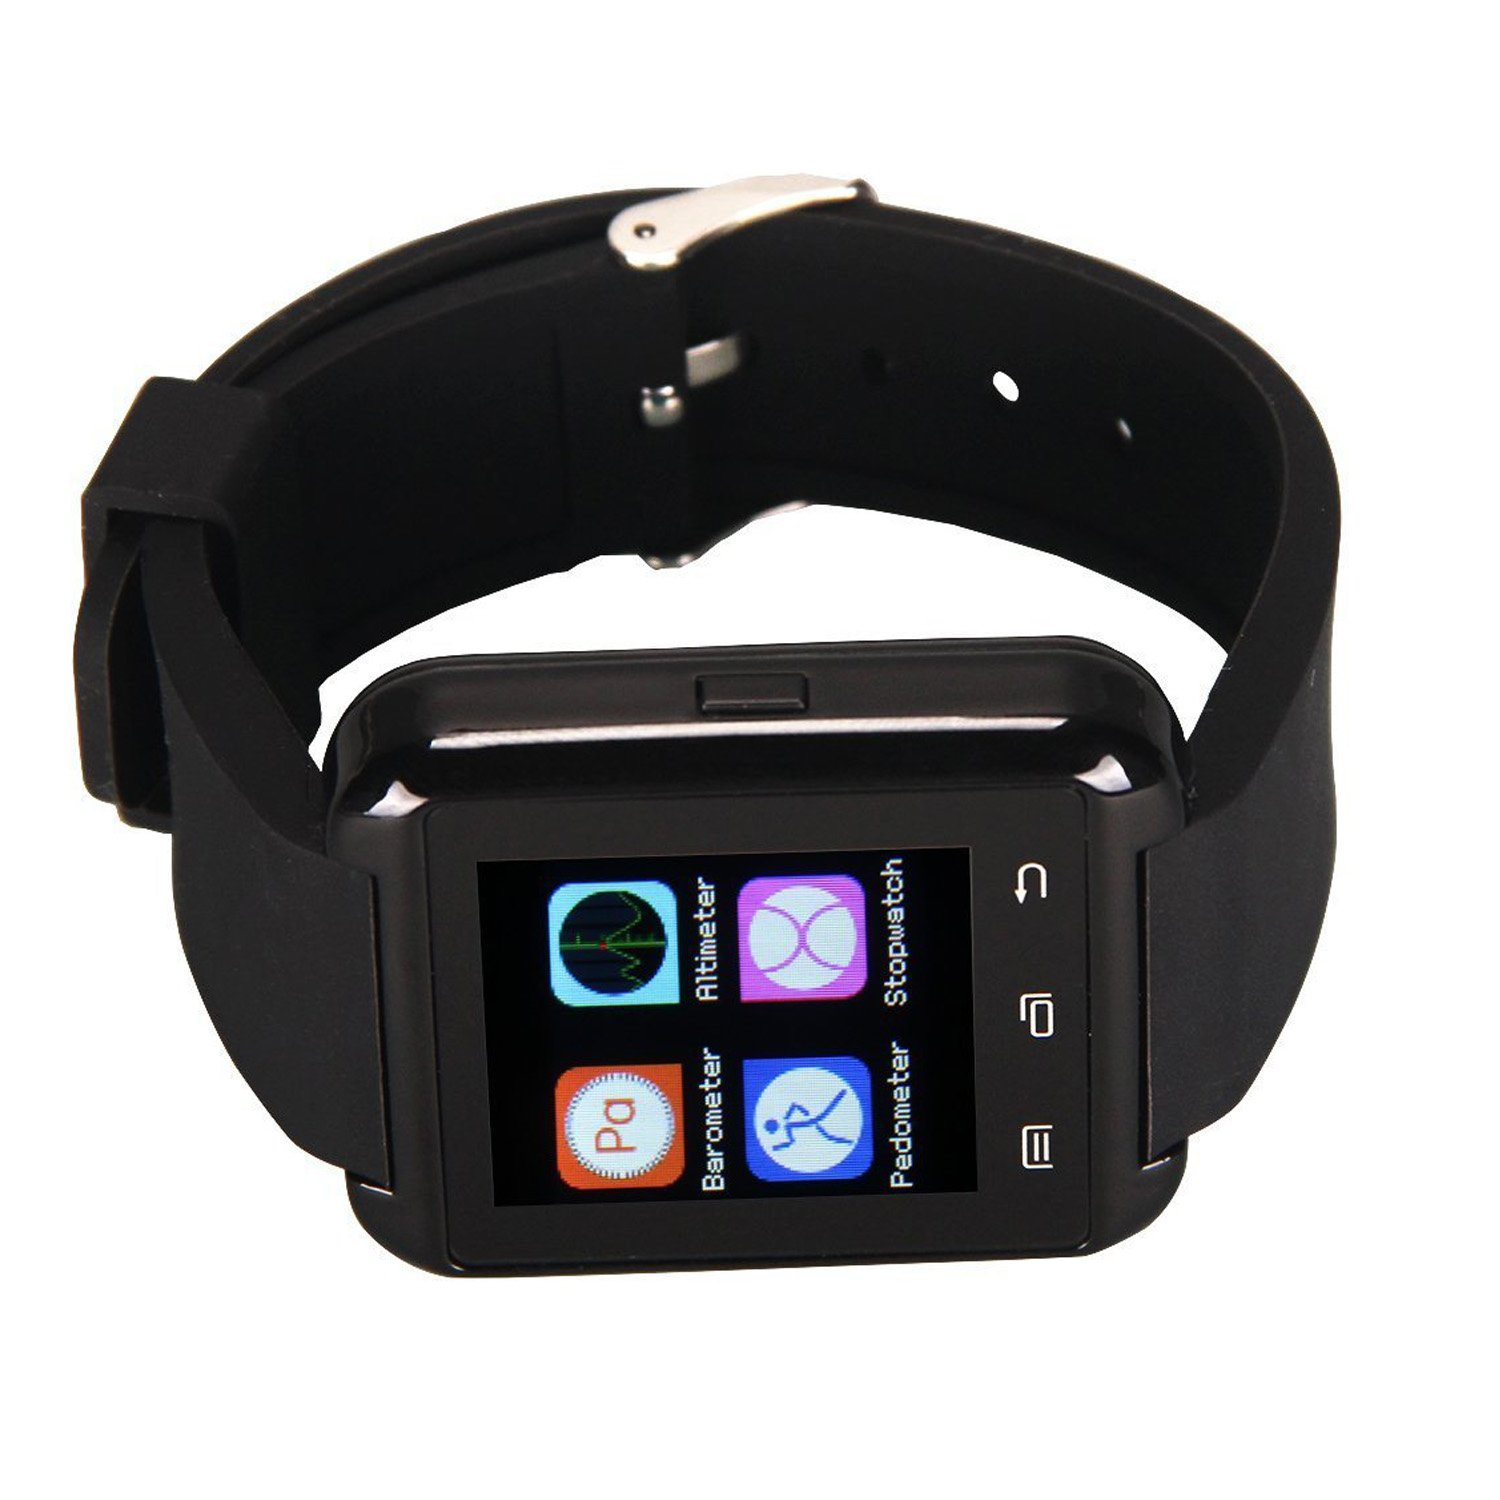 Smart Watches, eJiasu U8 Montre Connectée Bluetooth Batterie Smart Watch Sport pour les smartphones Android Samsung Galaxy Note S4 / S5 / S6 3/4/5 iPhone ...